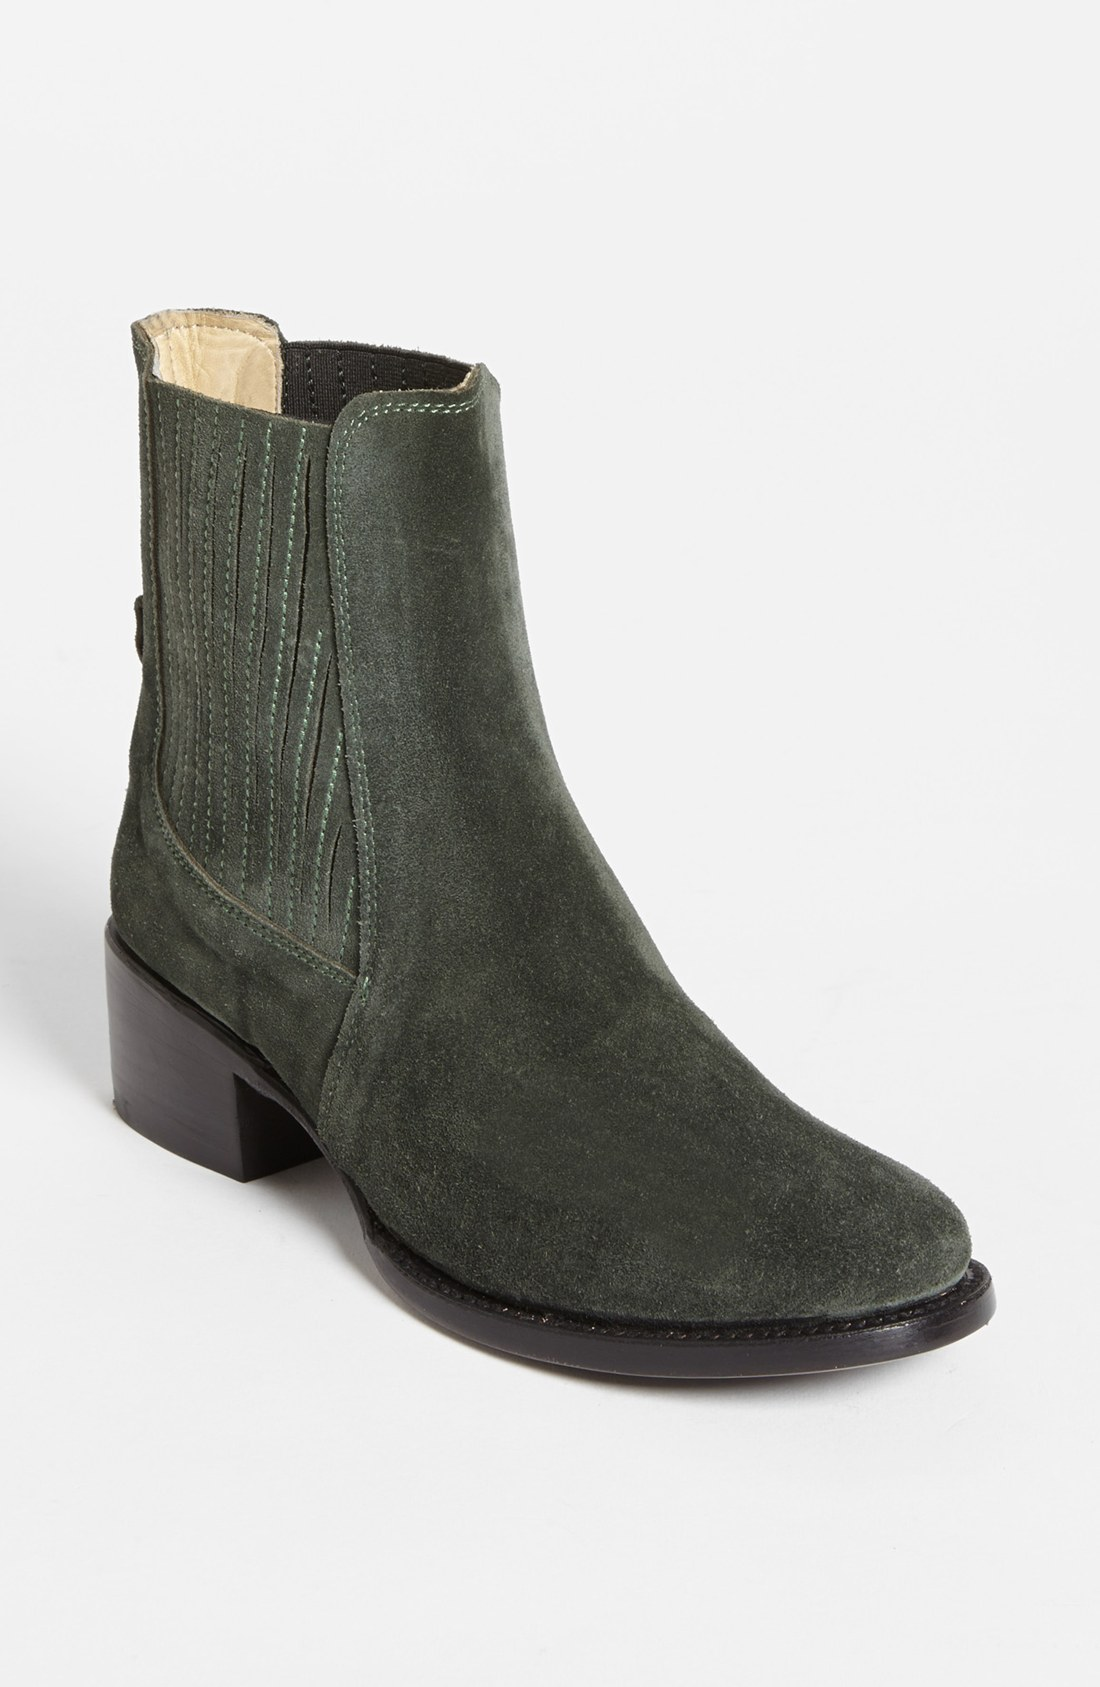 Elizabeth And James April Boot In Green Forest Green